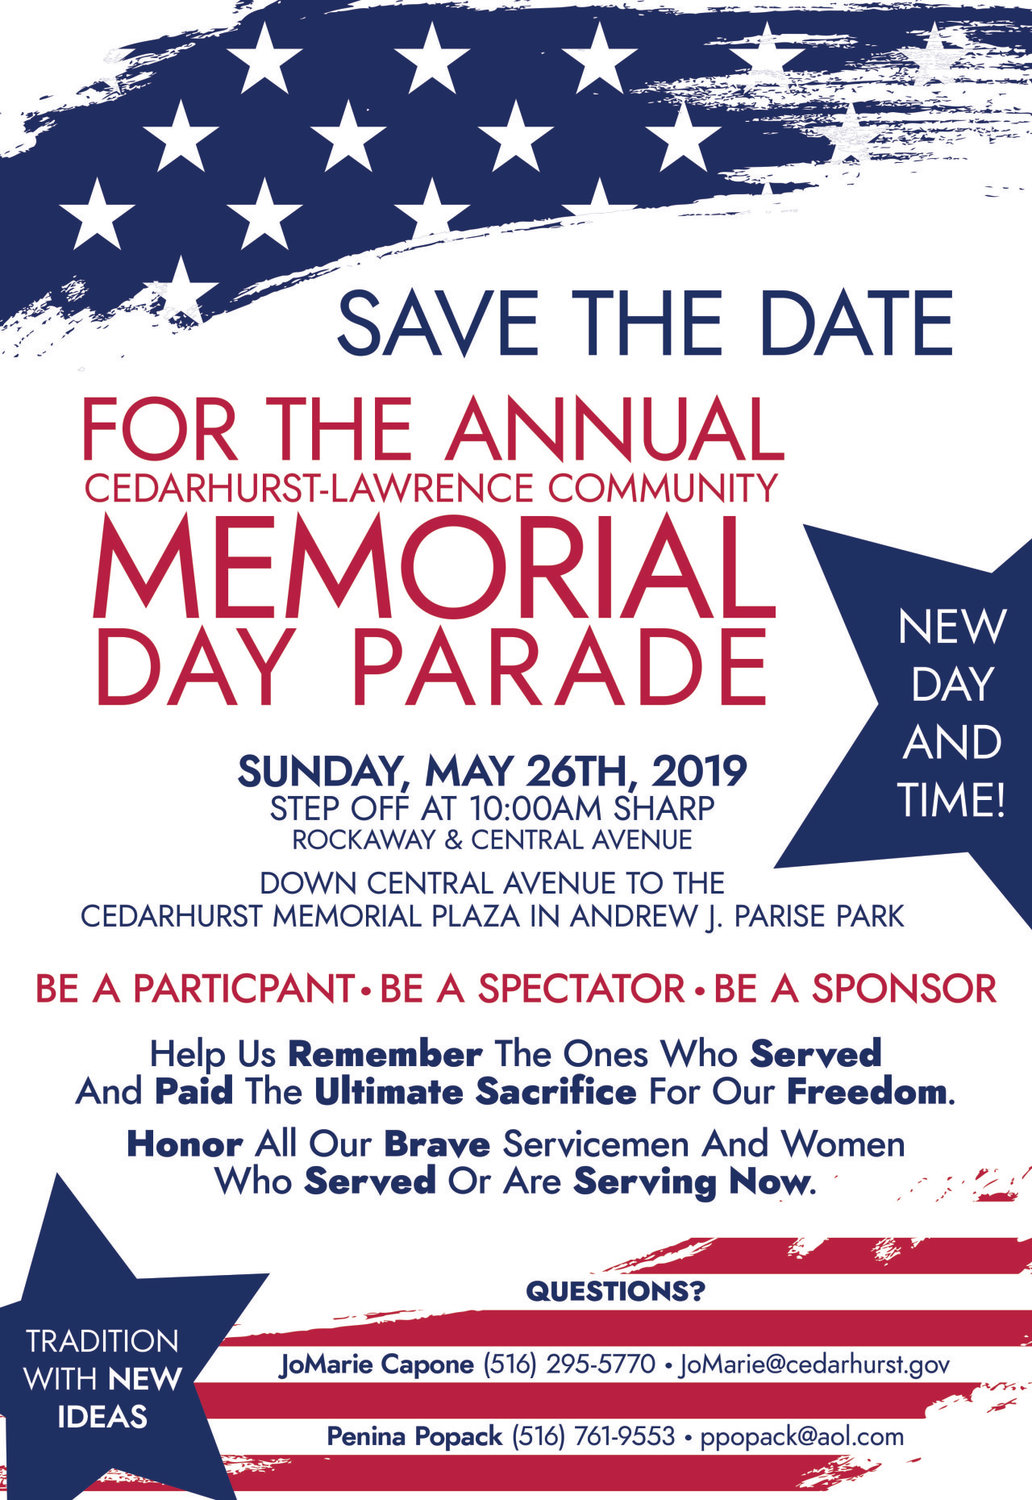 The Cedarhirst-Lawrence Memorial Day Parade is moving to Sunday this year and gets underway at the intrsection of Rockaway Turpike and Central Avenue in Lawrence at 10 a.m.